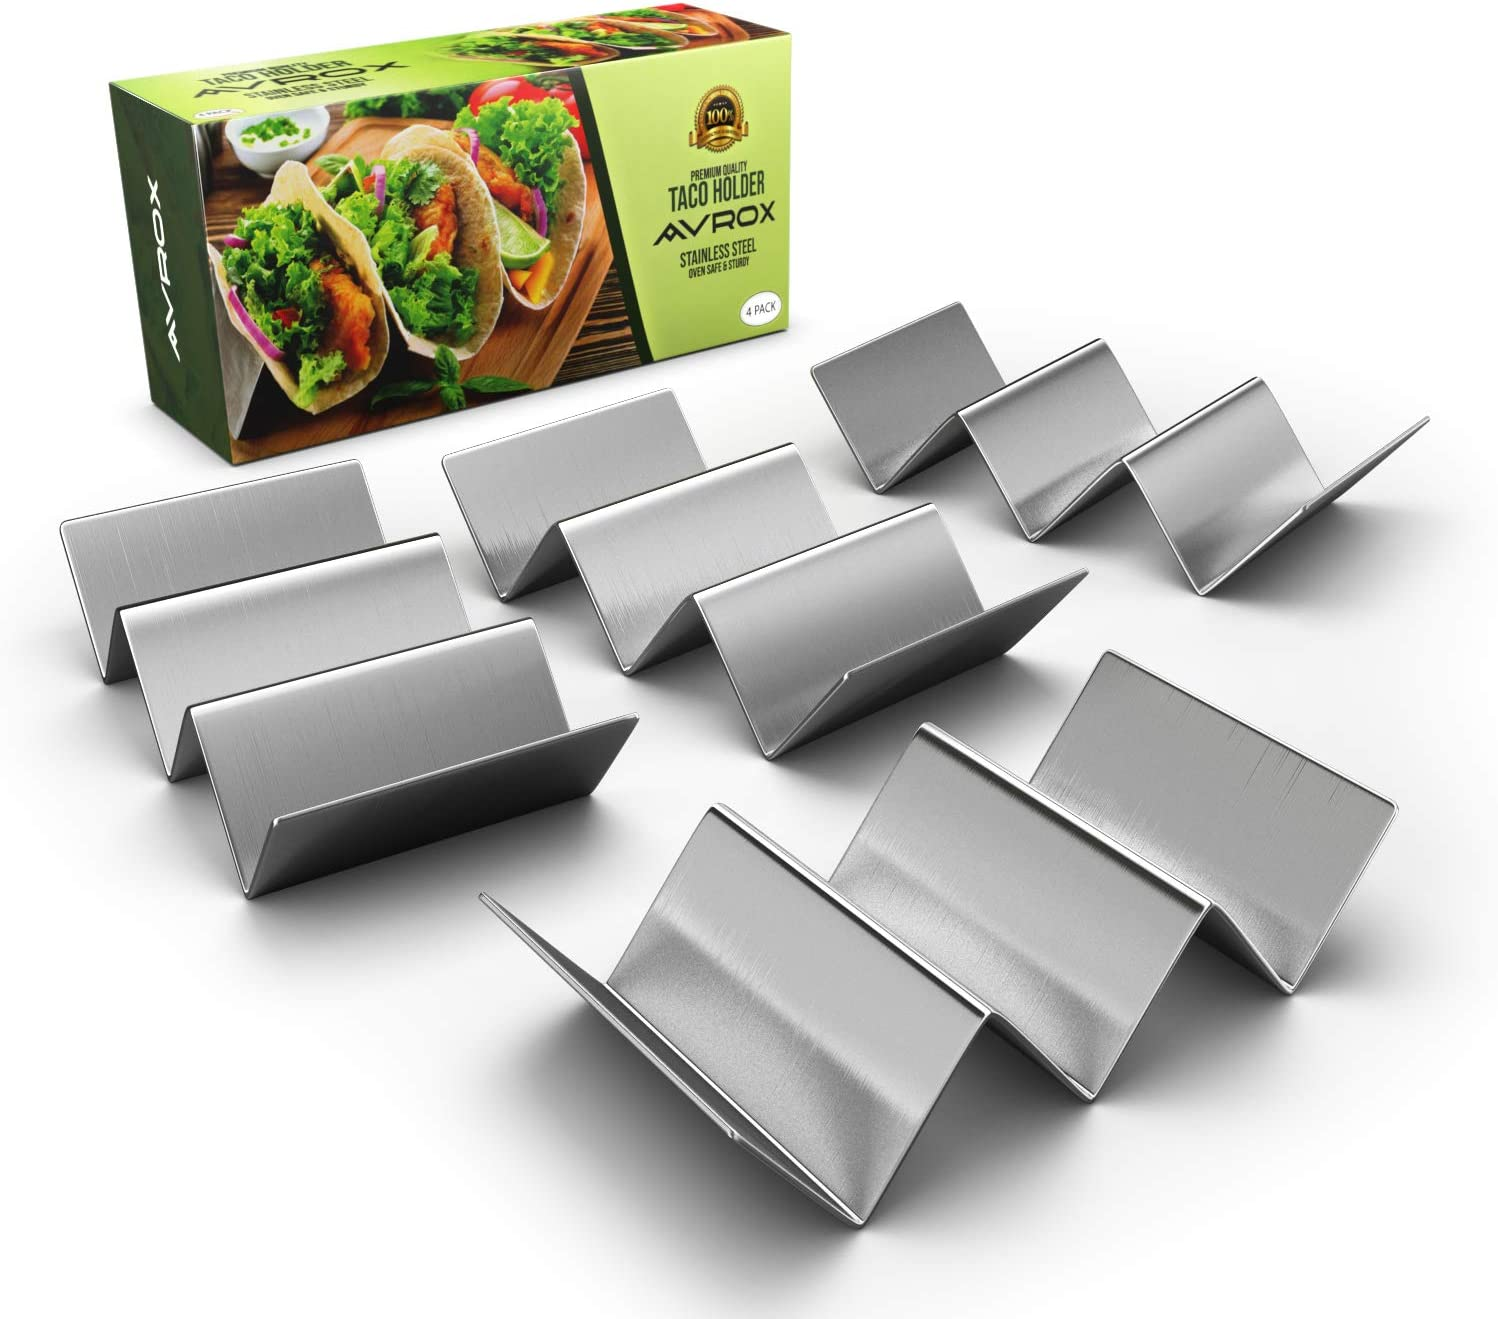 "2 Pack Taco Holder Stands,Stainless Steel Taco Truck Tray Style Holds Up To 3 Tacos Each as Plates,Oven Safe for Baking,Dishwasher and Grill Safe,Easy To Fill Taco Rack,Holders Size 8/"" x 4/"" x 2/"""